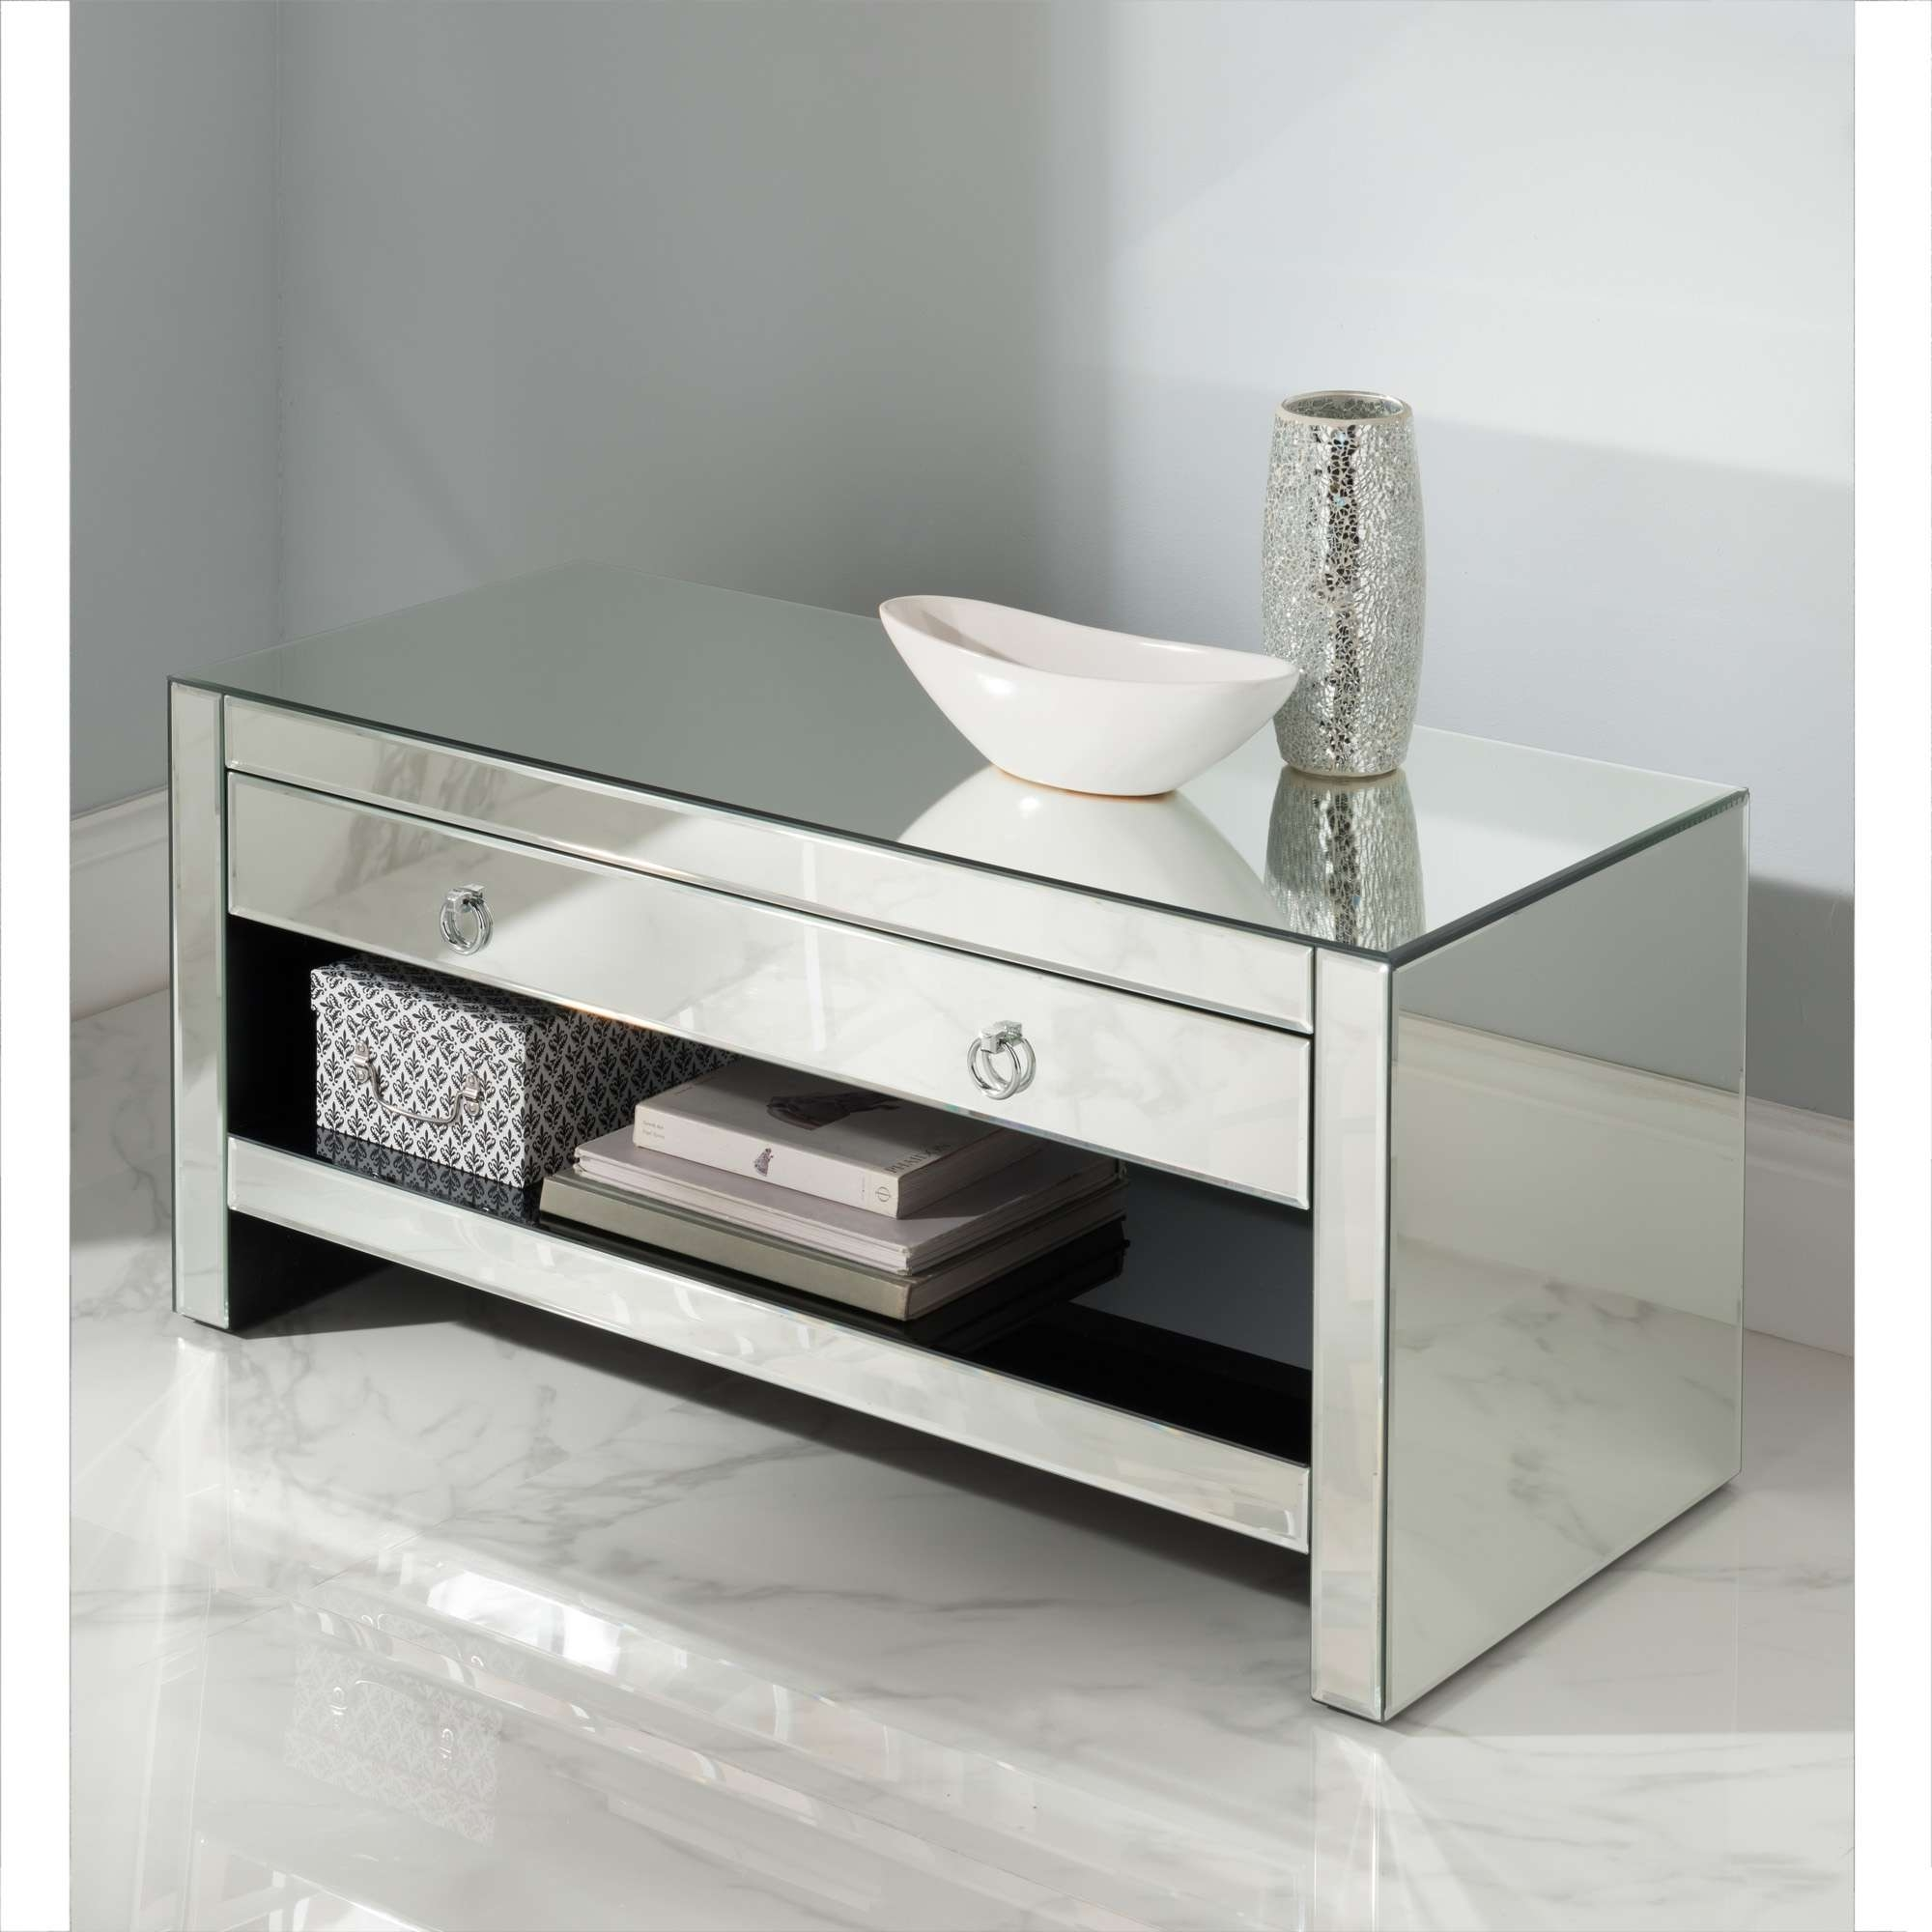 Mirrored Tv Cabinet | Glass Venetian Furniture | Homesdirect365 With Mirrored Tv Cabinets Furniture (View 2 of 20)